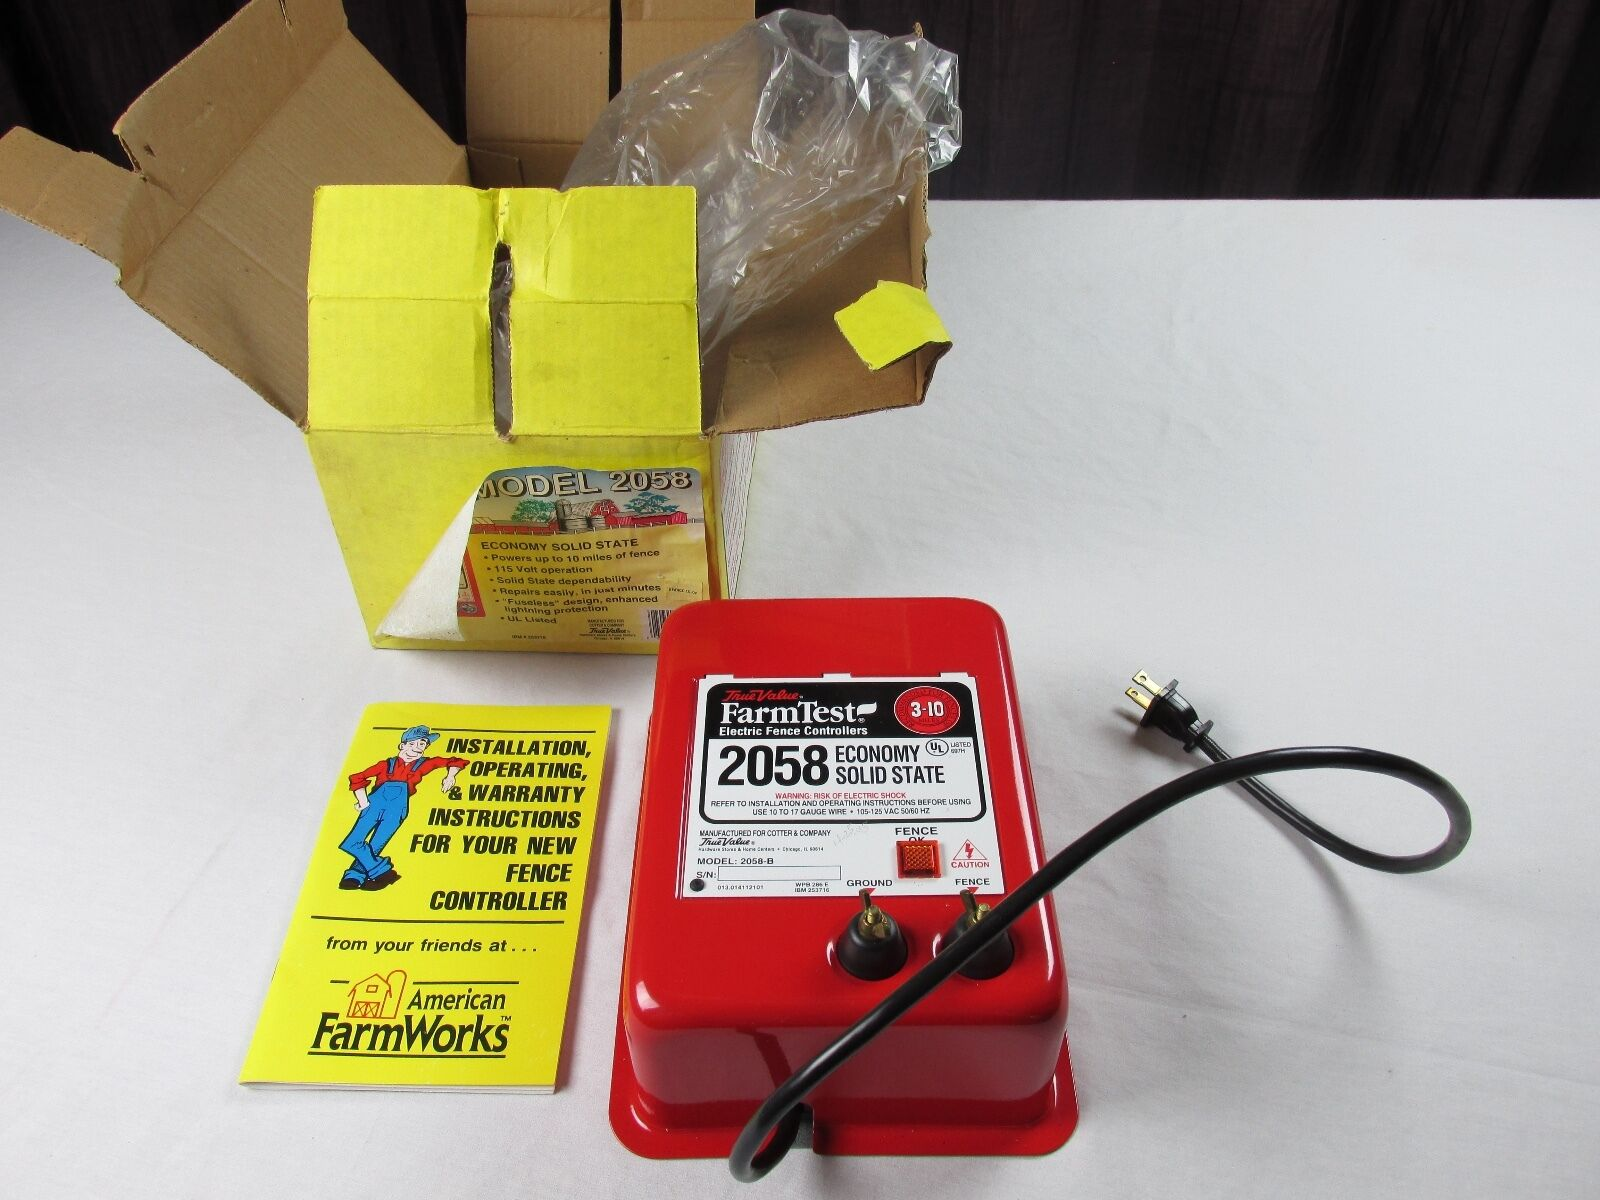 Farmtest electric fence controller model 2058 10 mile fence 115v picture 1 of 7 sciox Choice Image